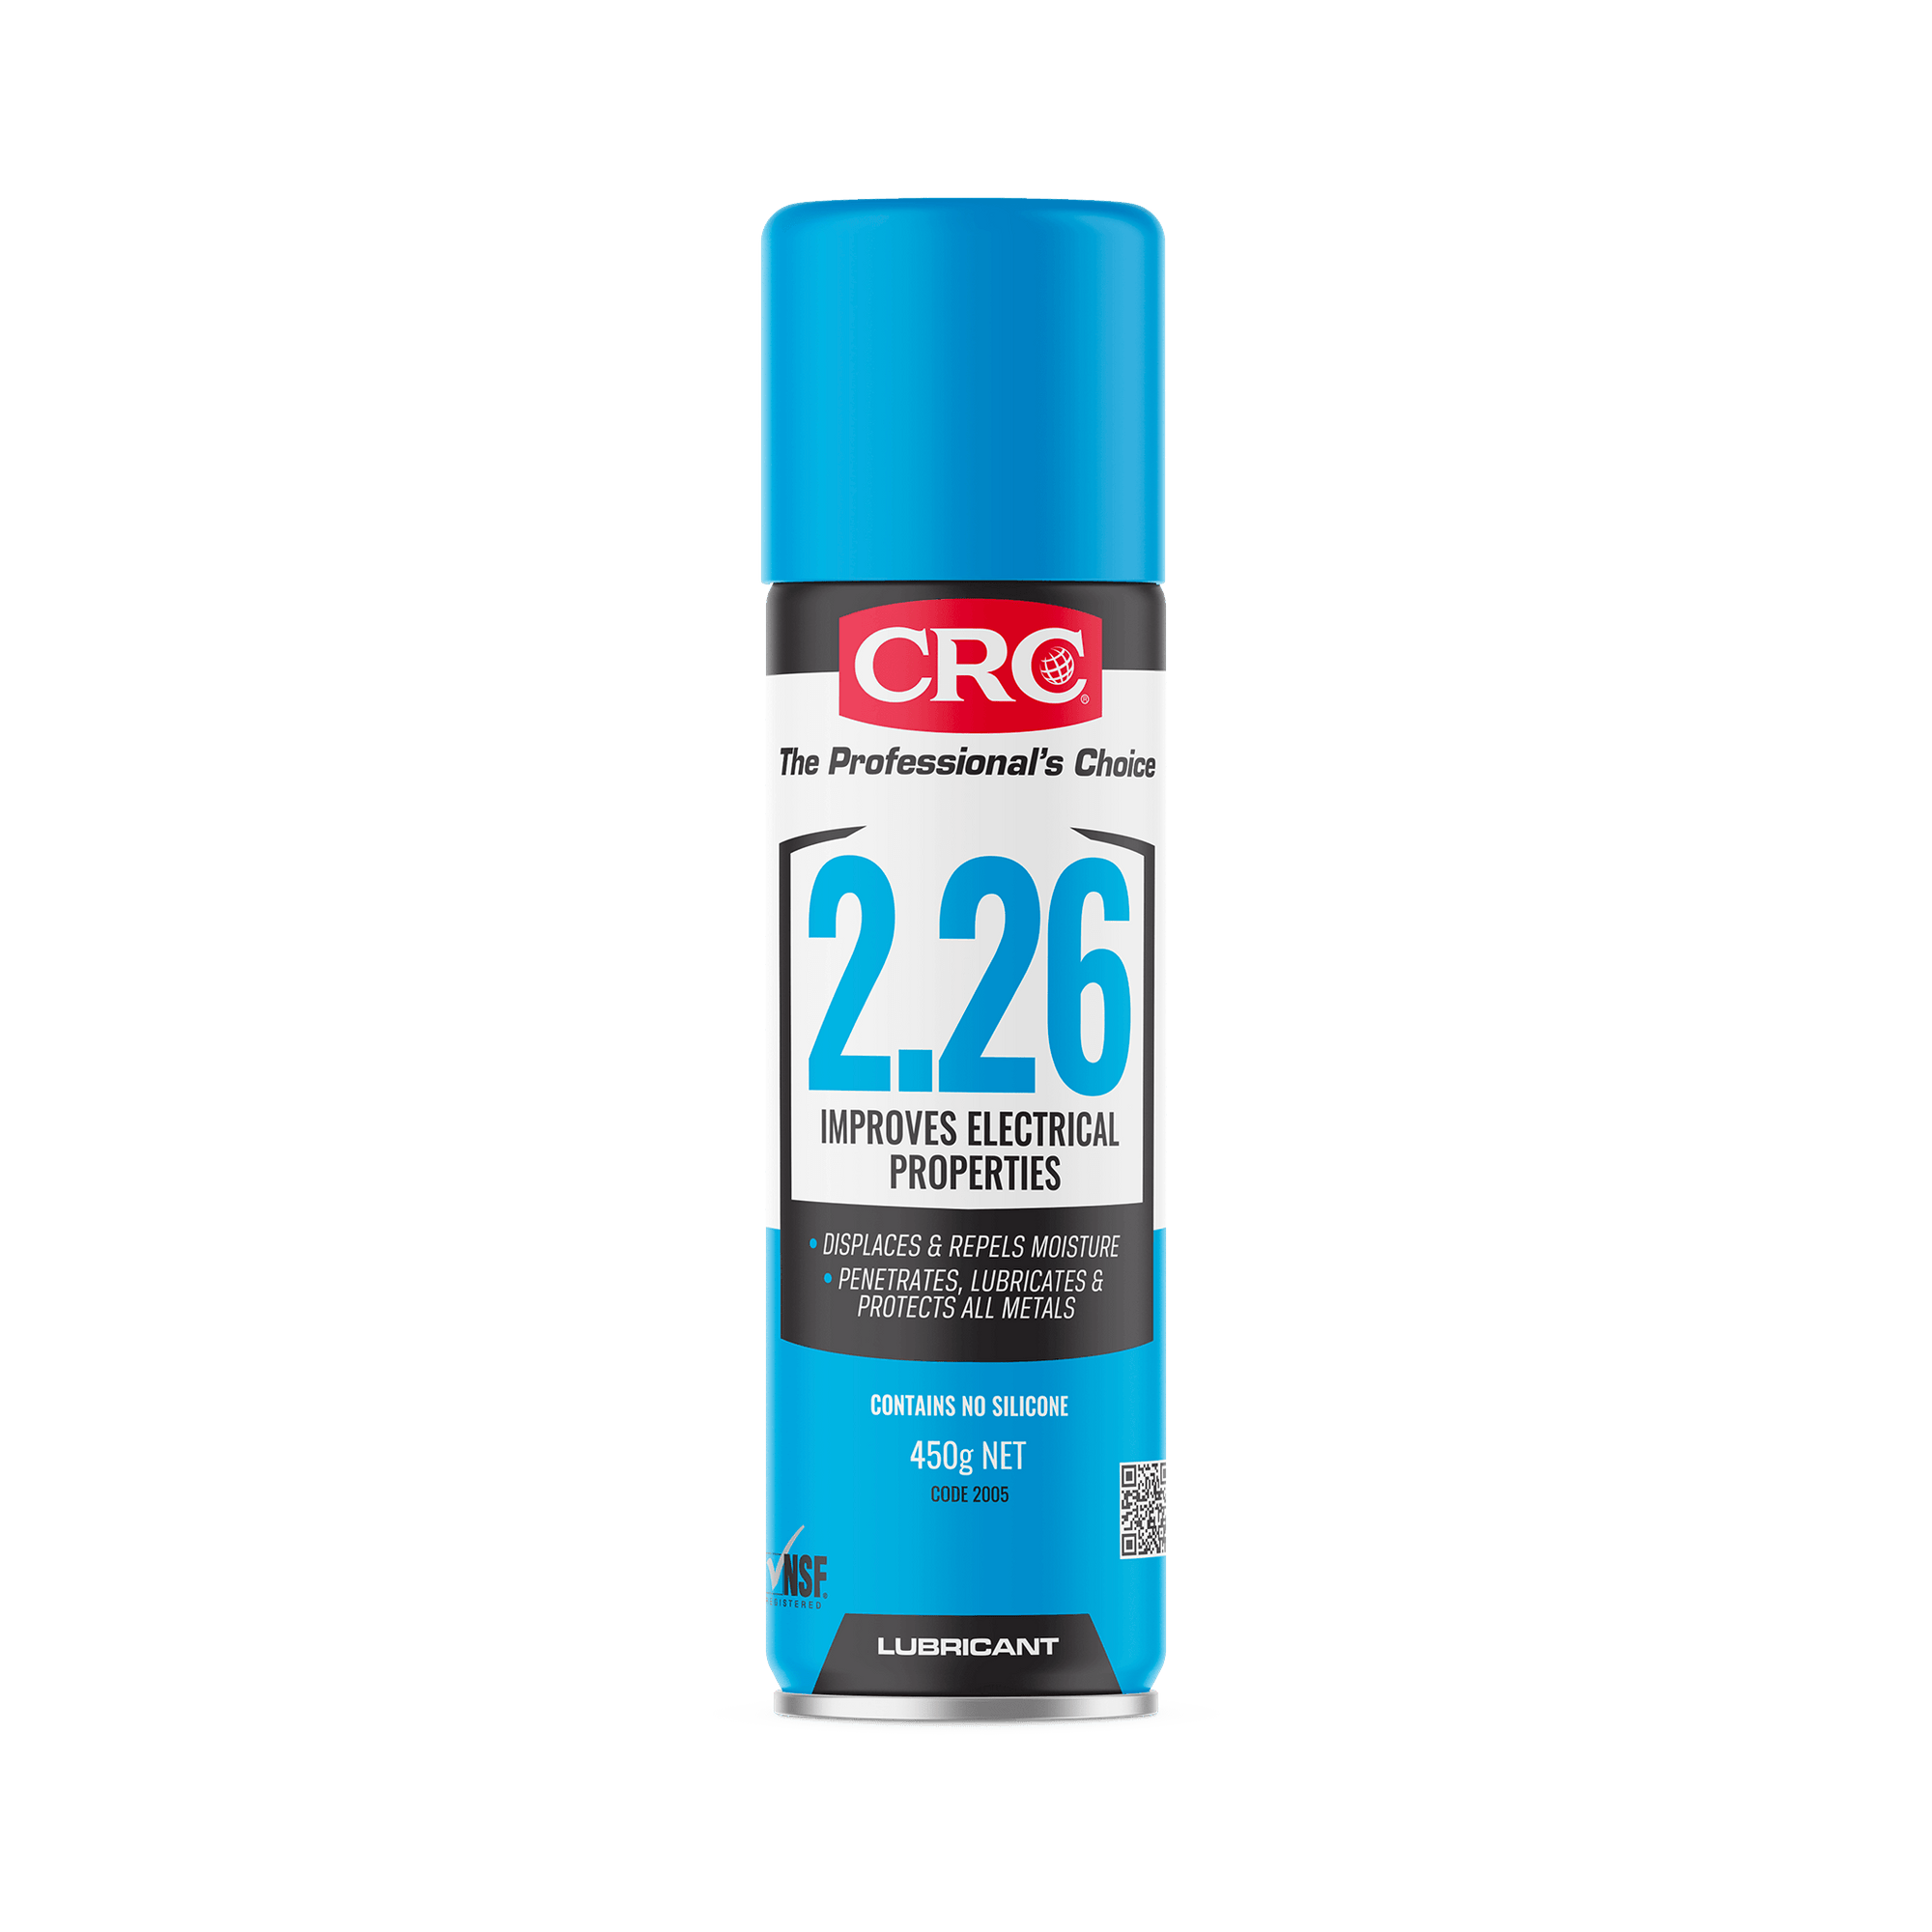 CRC 2-26 Electronic Cleaner